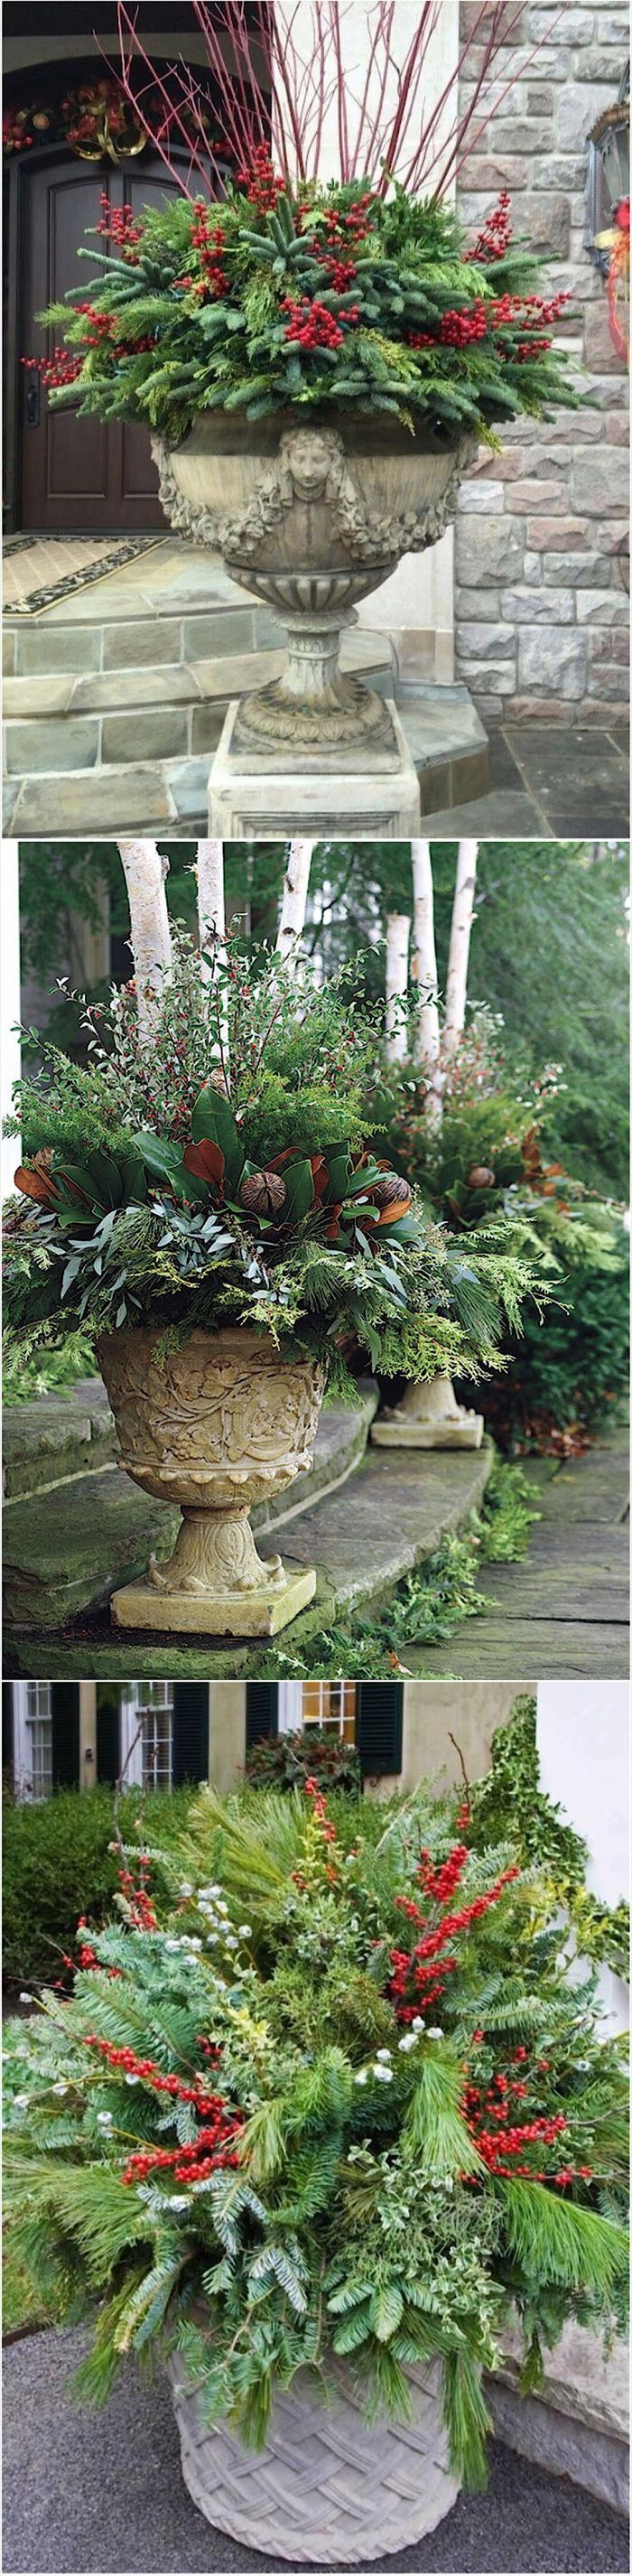 winter container garden ideas winter container gardening and